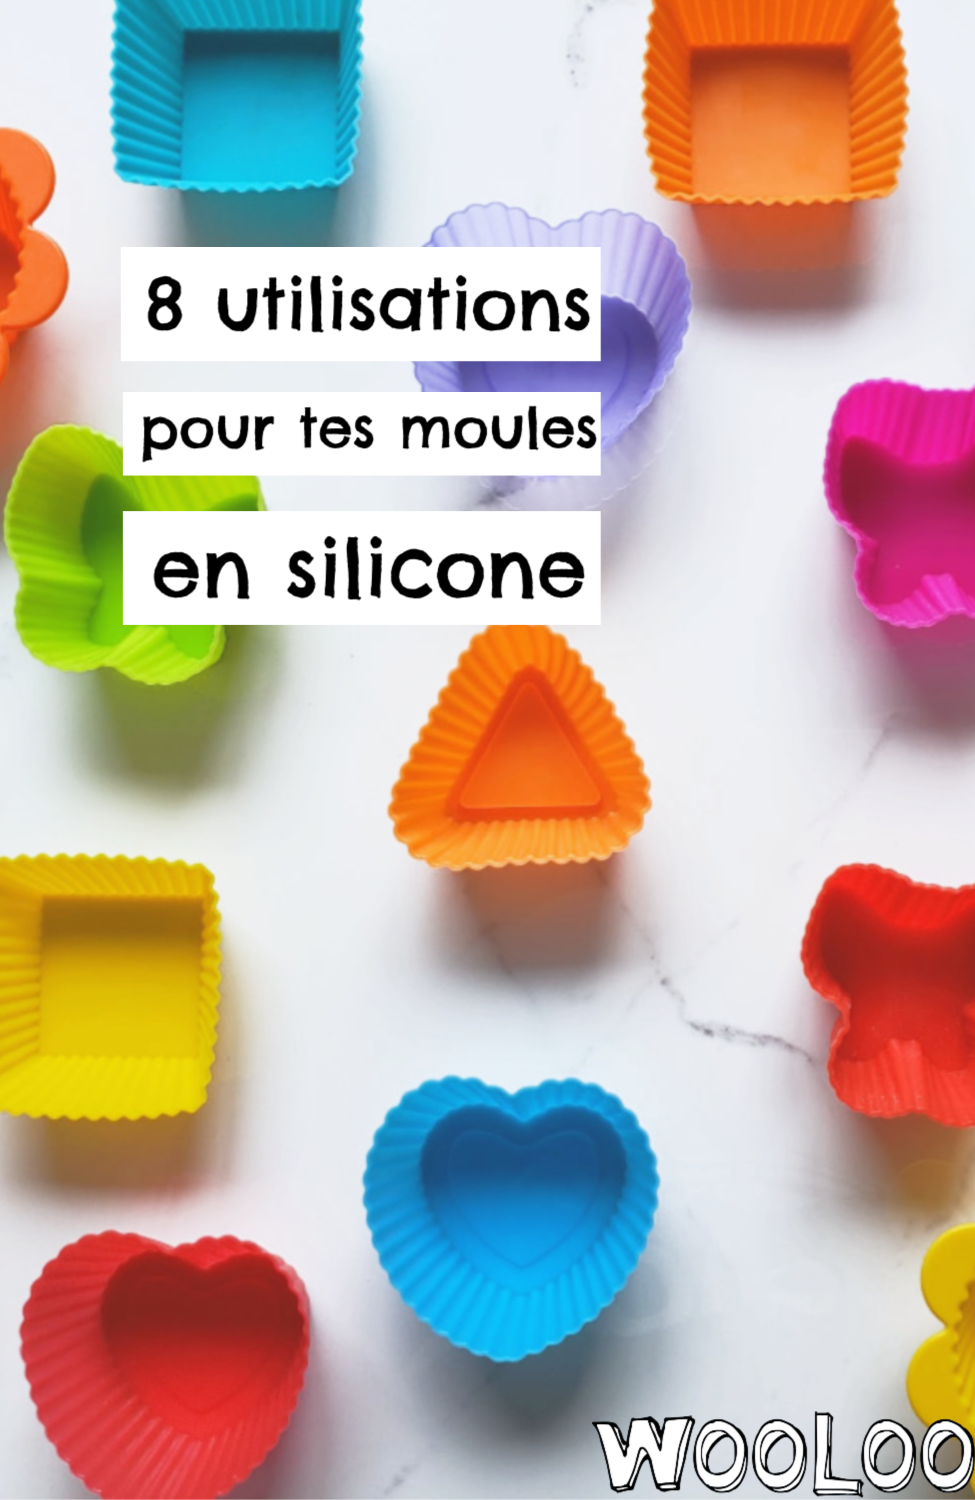 utilisations moules en silicone wooloo